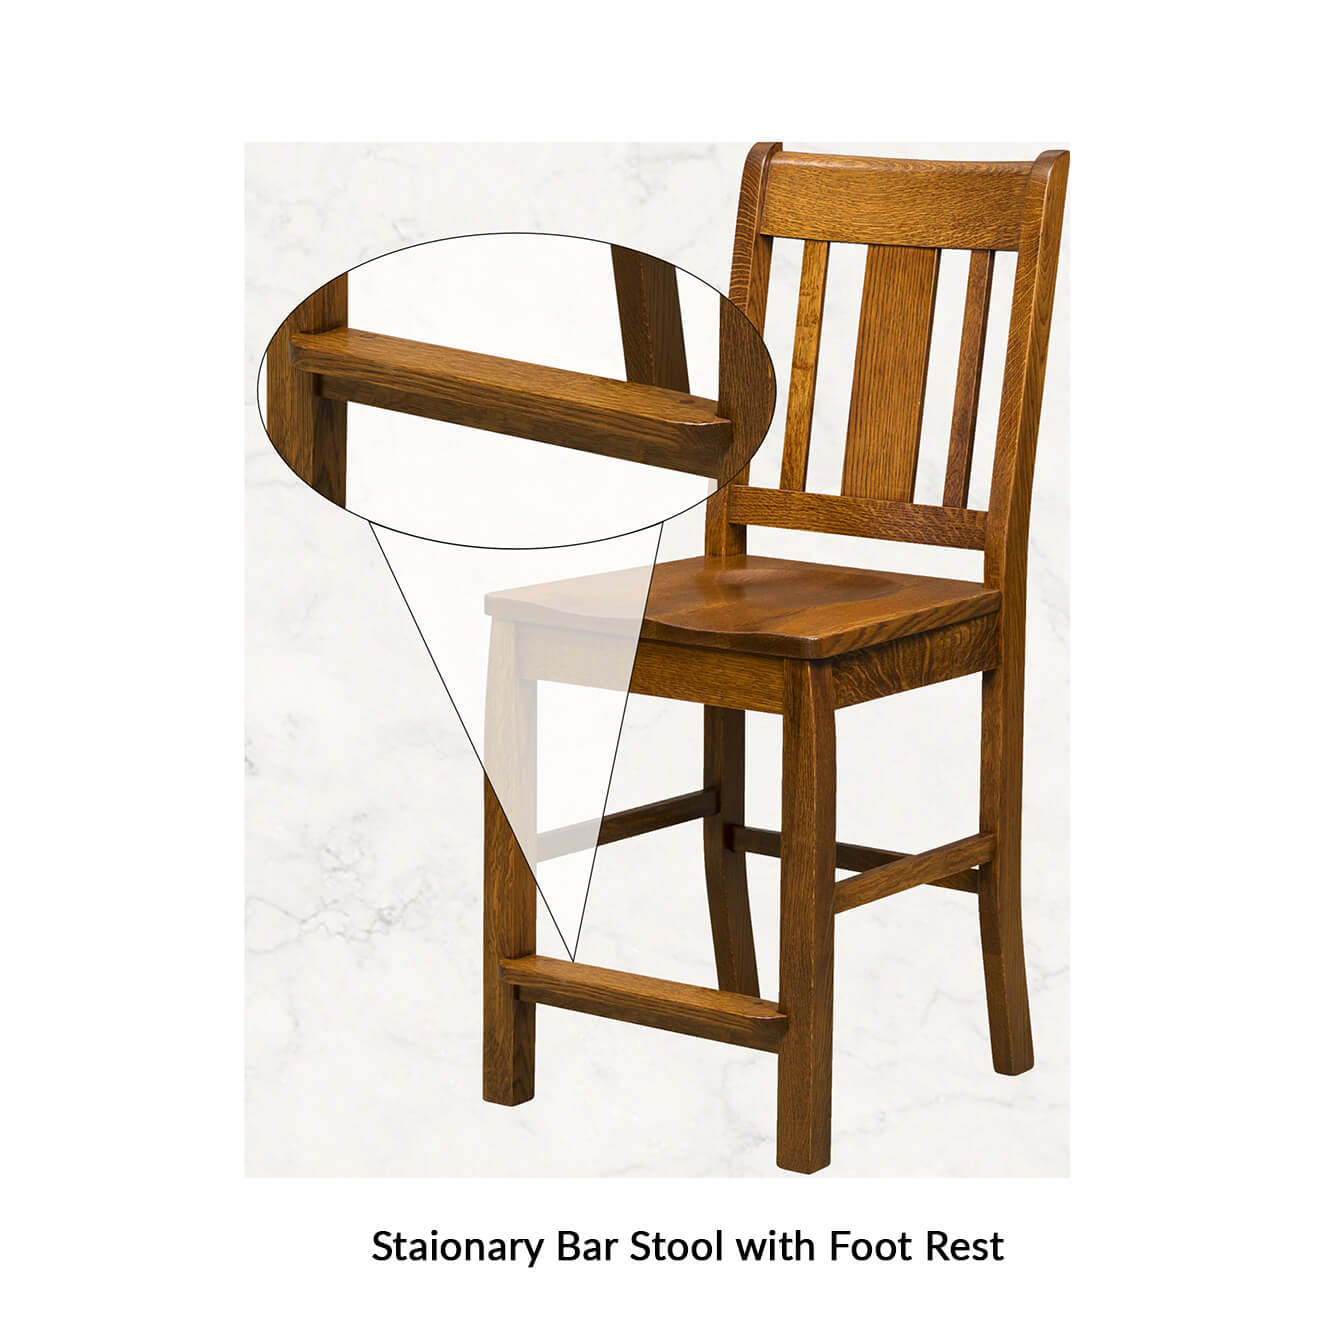 9.0-stationary-bar-stool-with-foot-rest.jpg